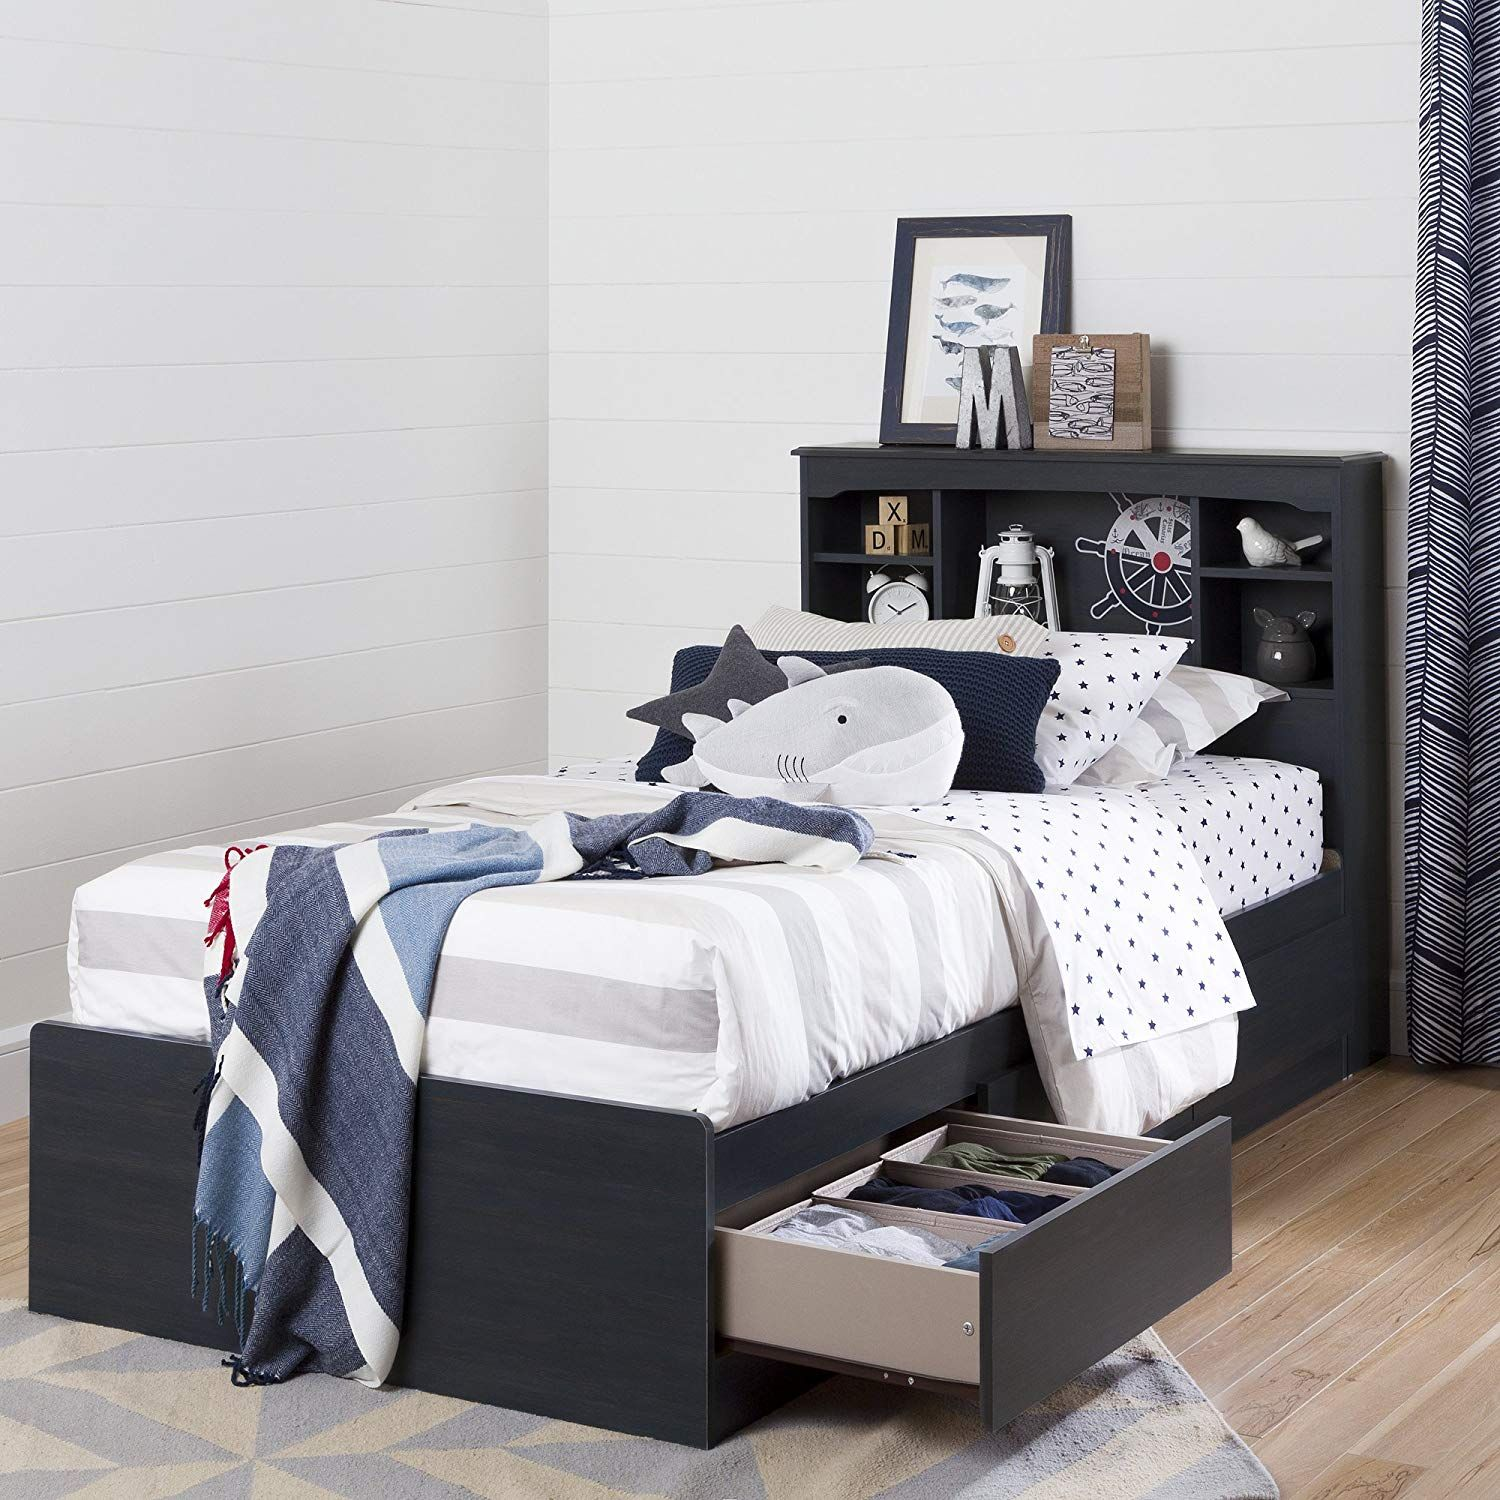 South Shore Aviron Mates Bed with 3 Drawers